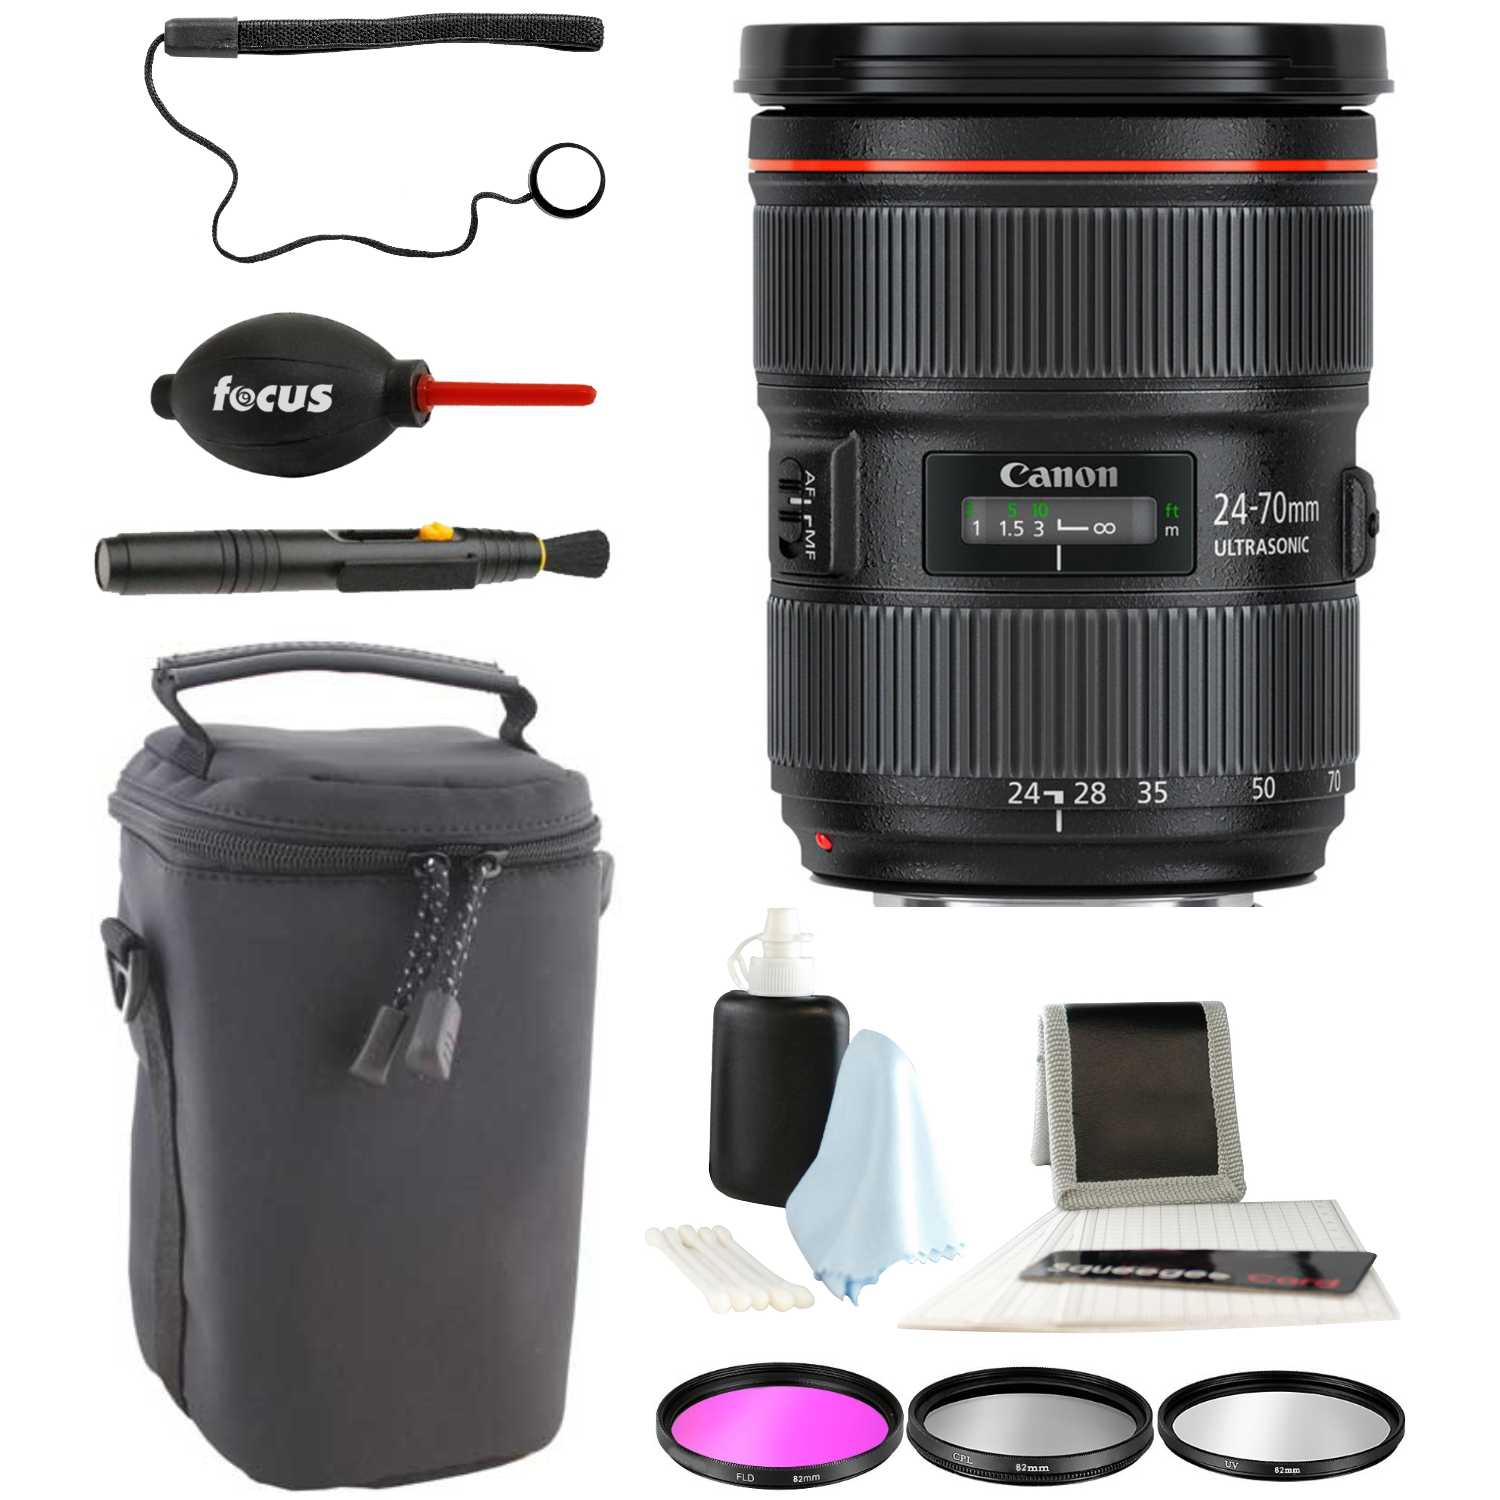 Canon EF 24-70mm f/2.8L II USM Standard Zoom Lens with Accessory Bundle